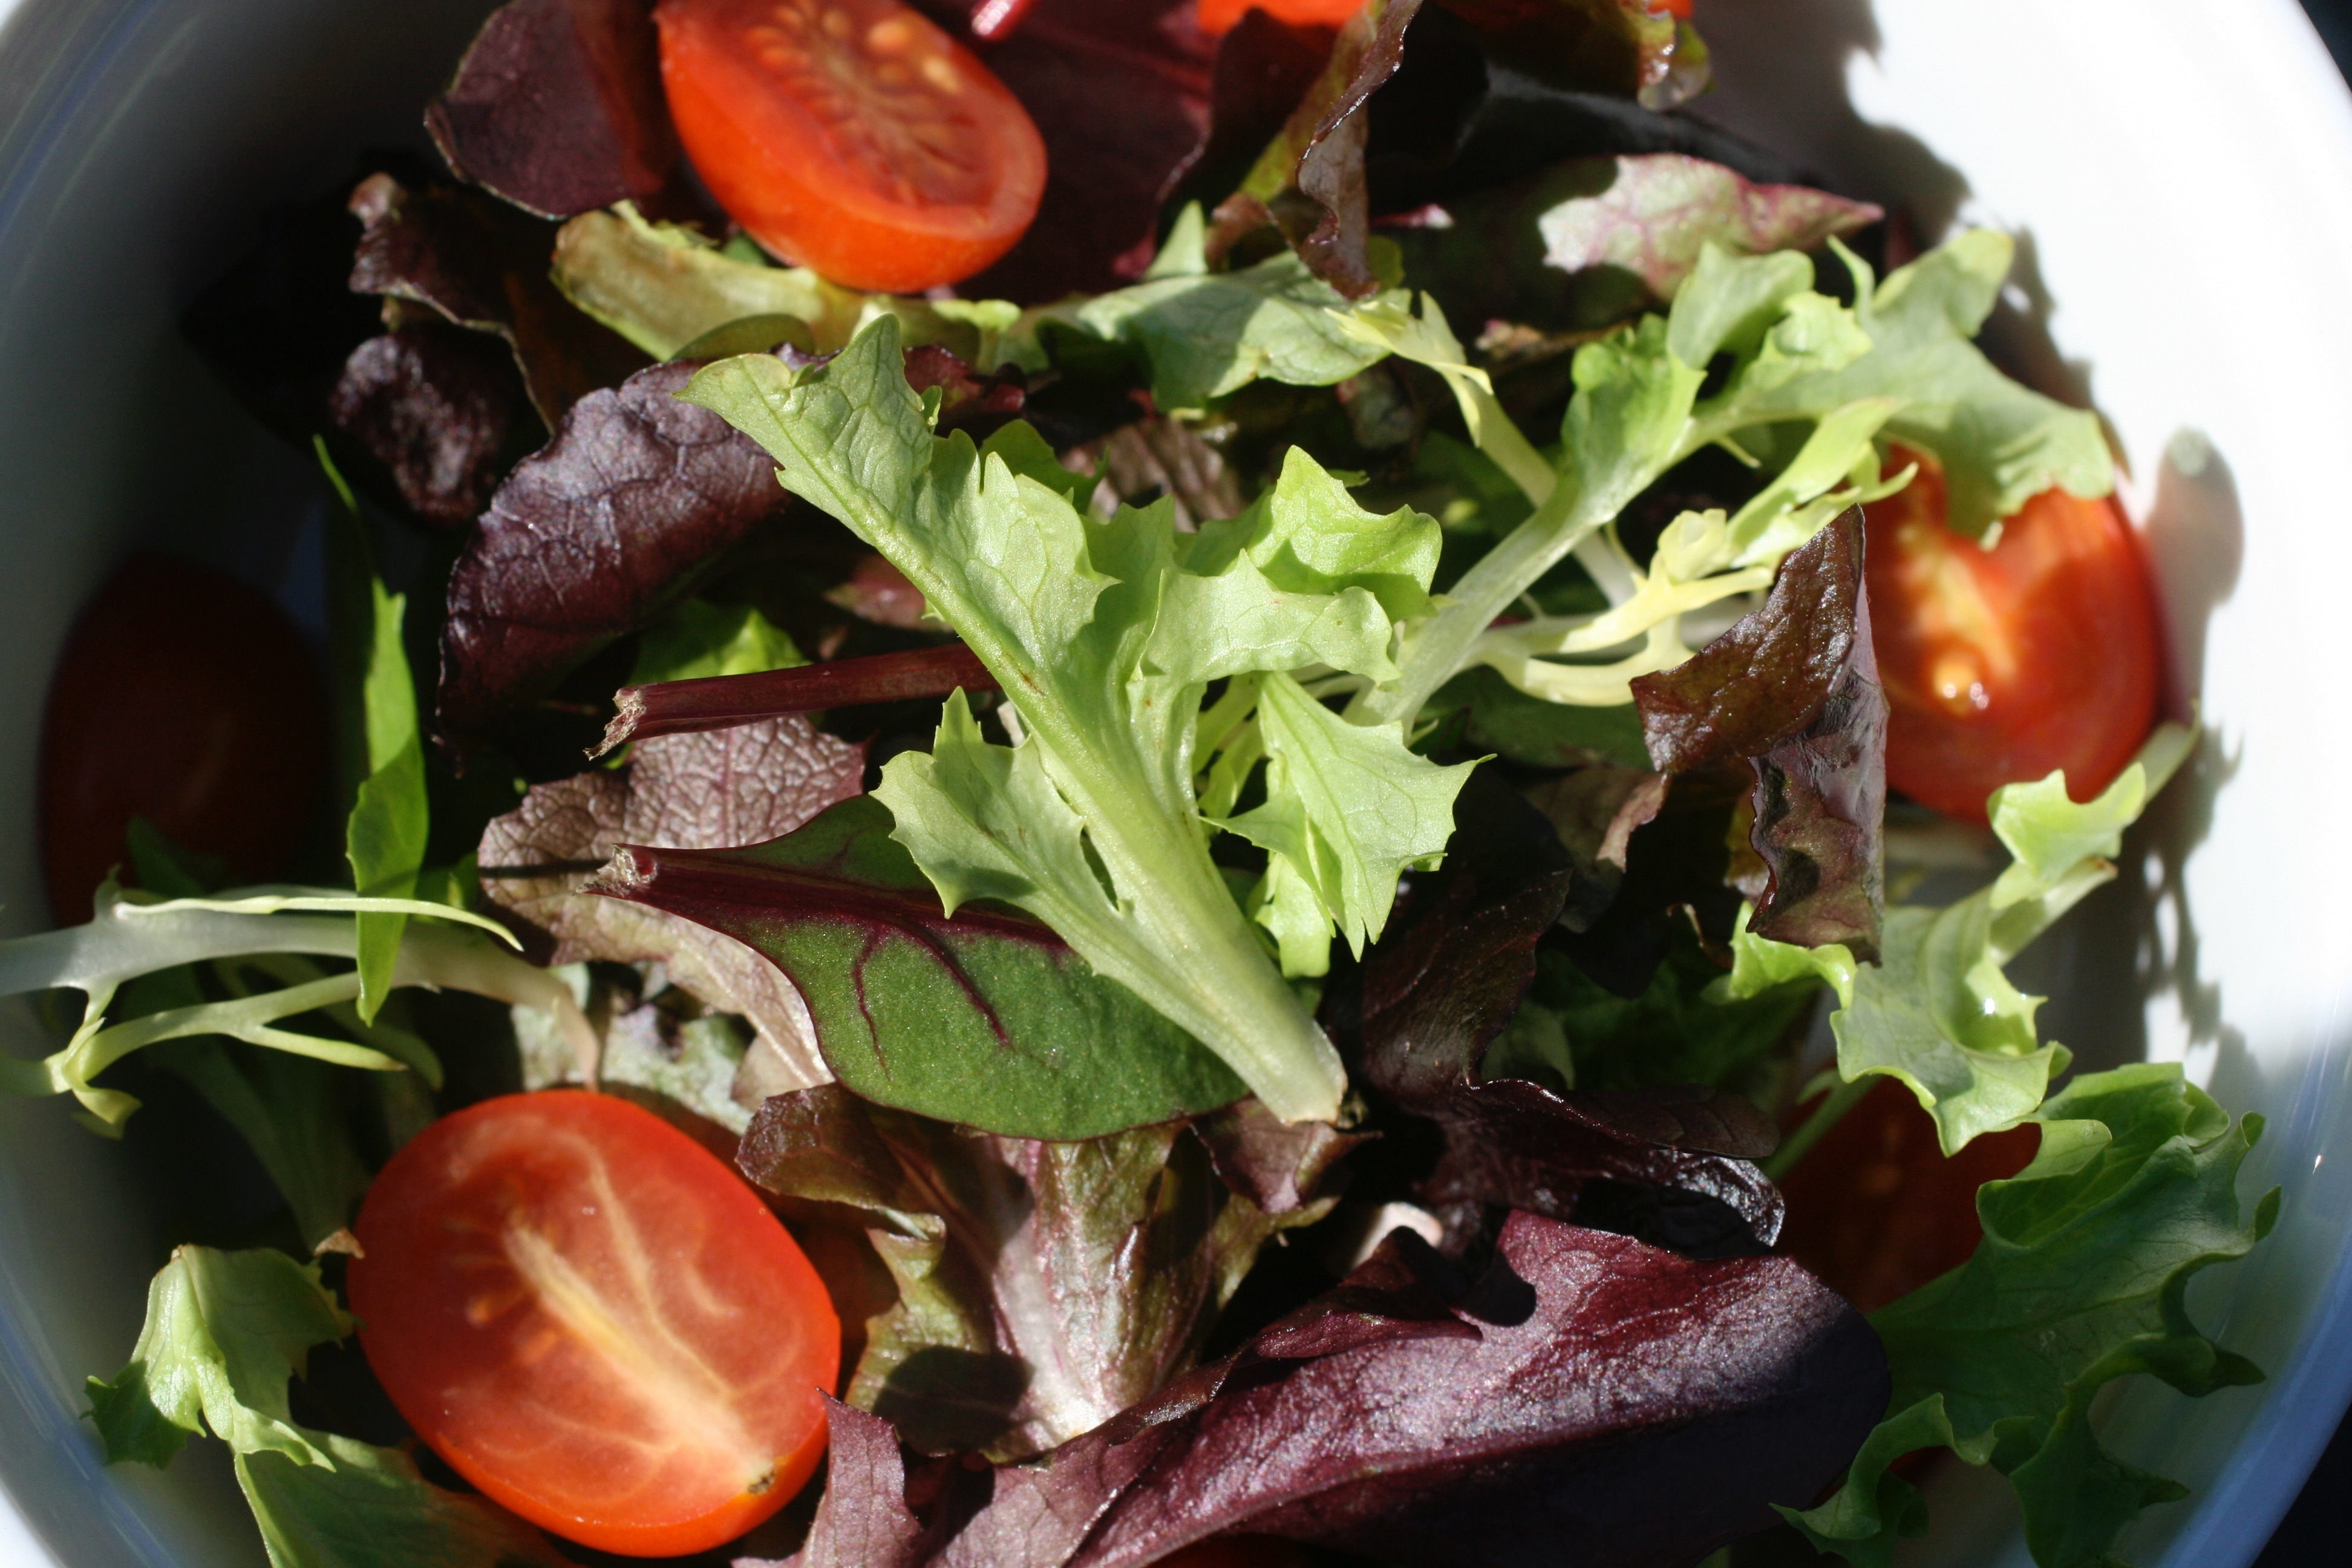 Is homegrown food safer? Not necessarily. Take these precautions.